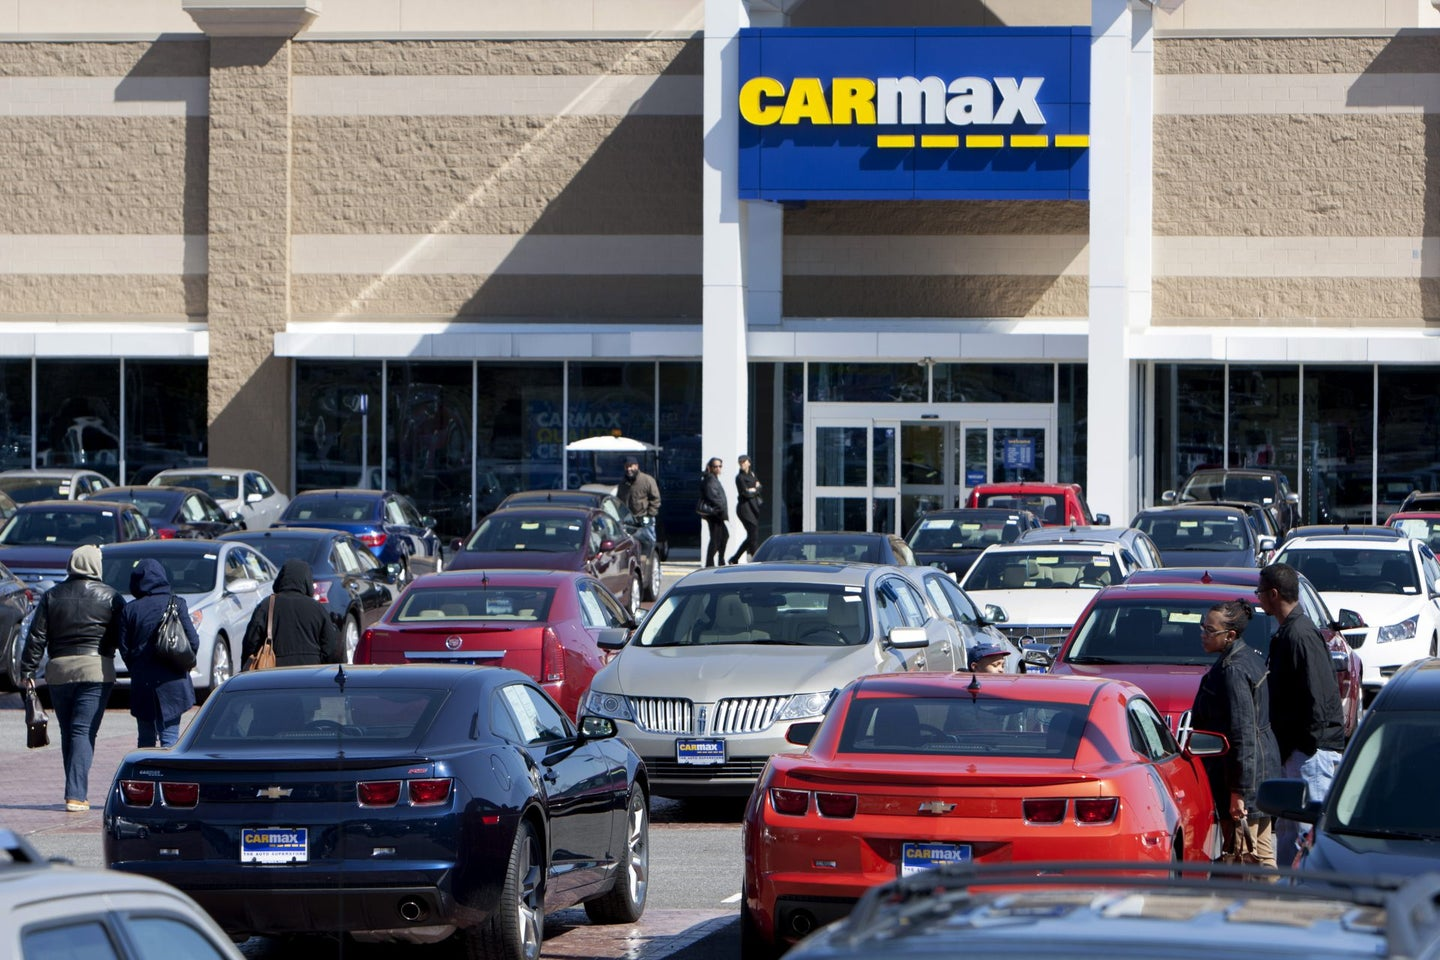 Inside A Carmax Inc. Location Ahead Of Earnings Figures